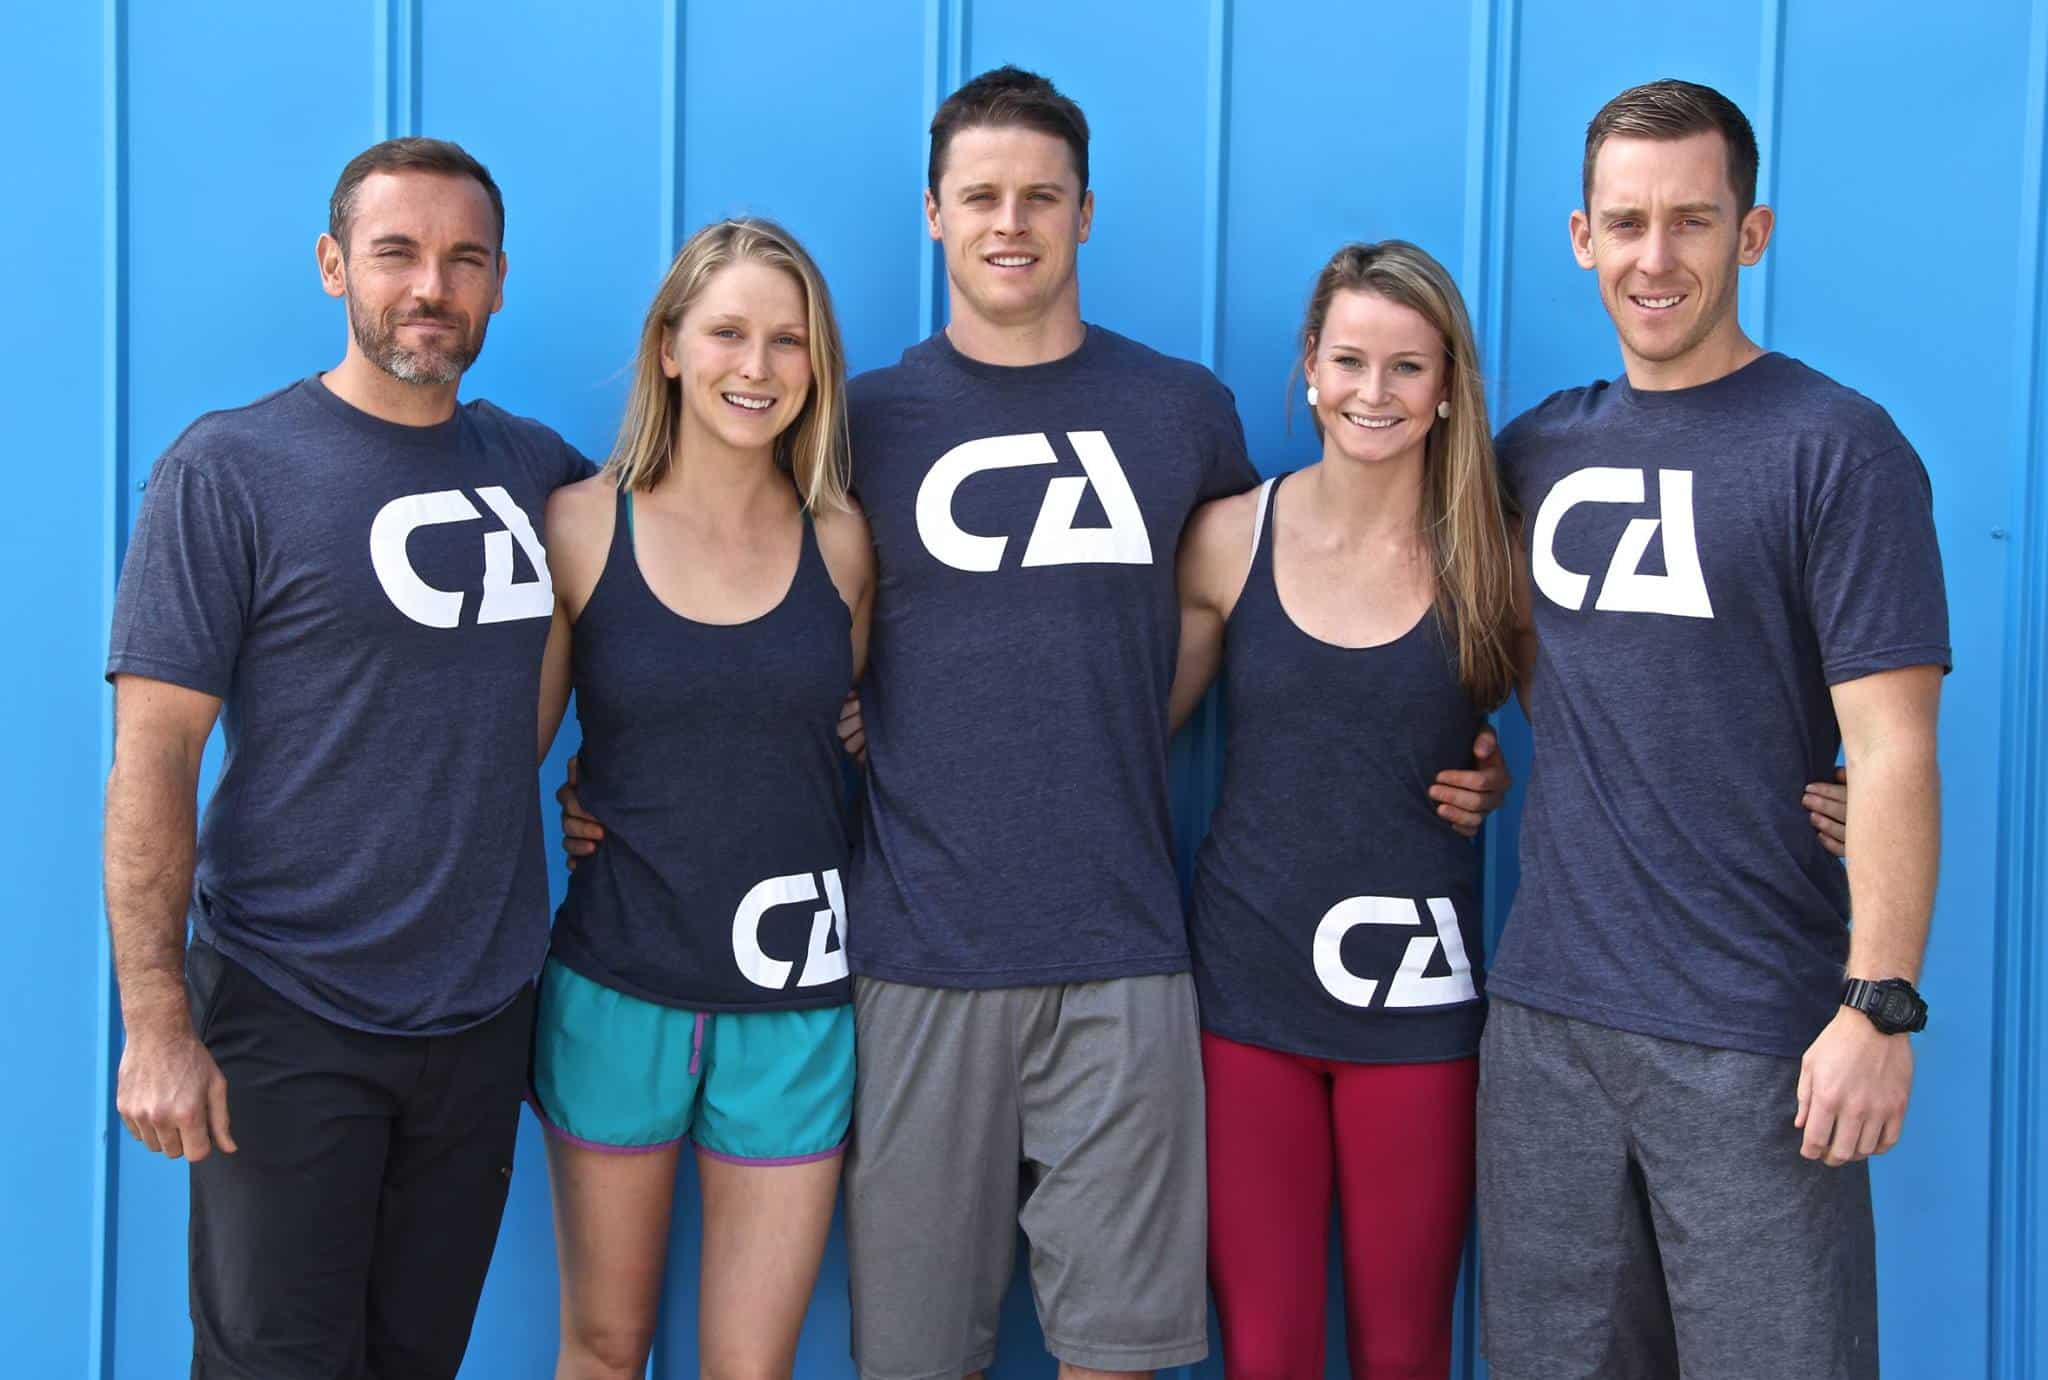 OPEX Gym Success Story: Central Athlete